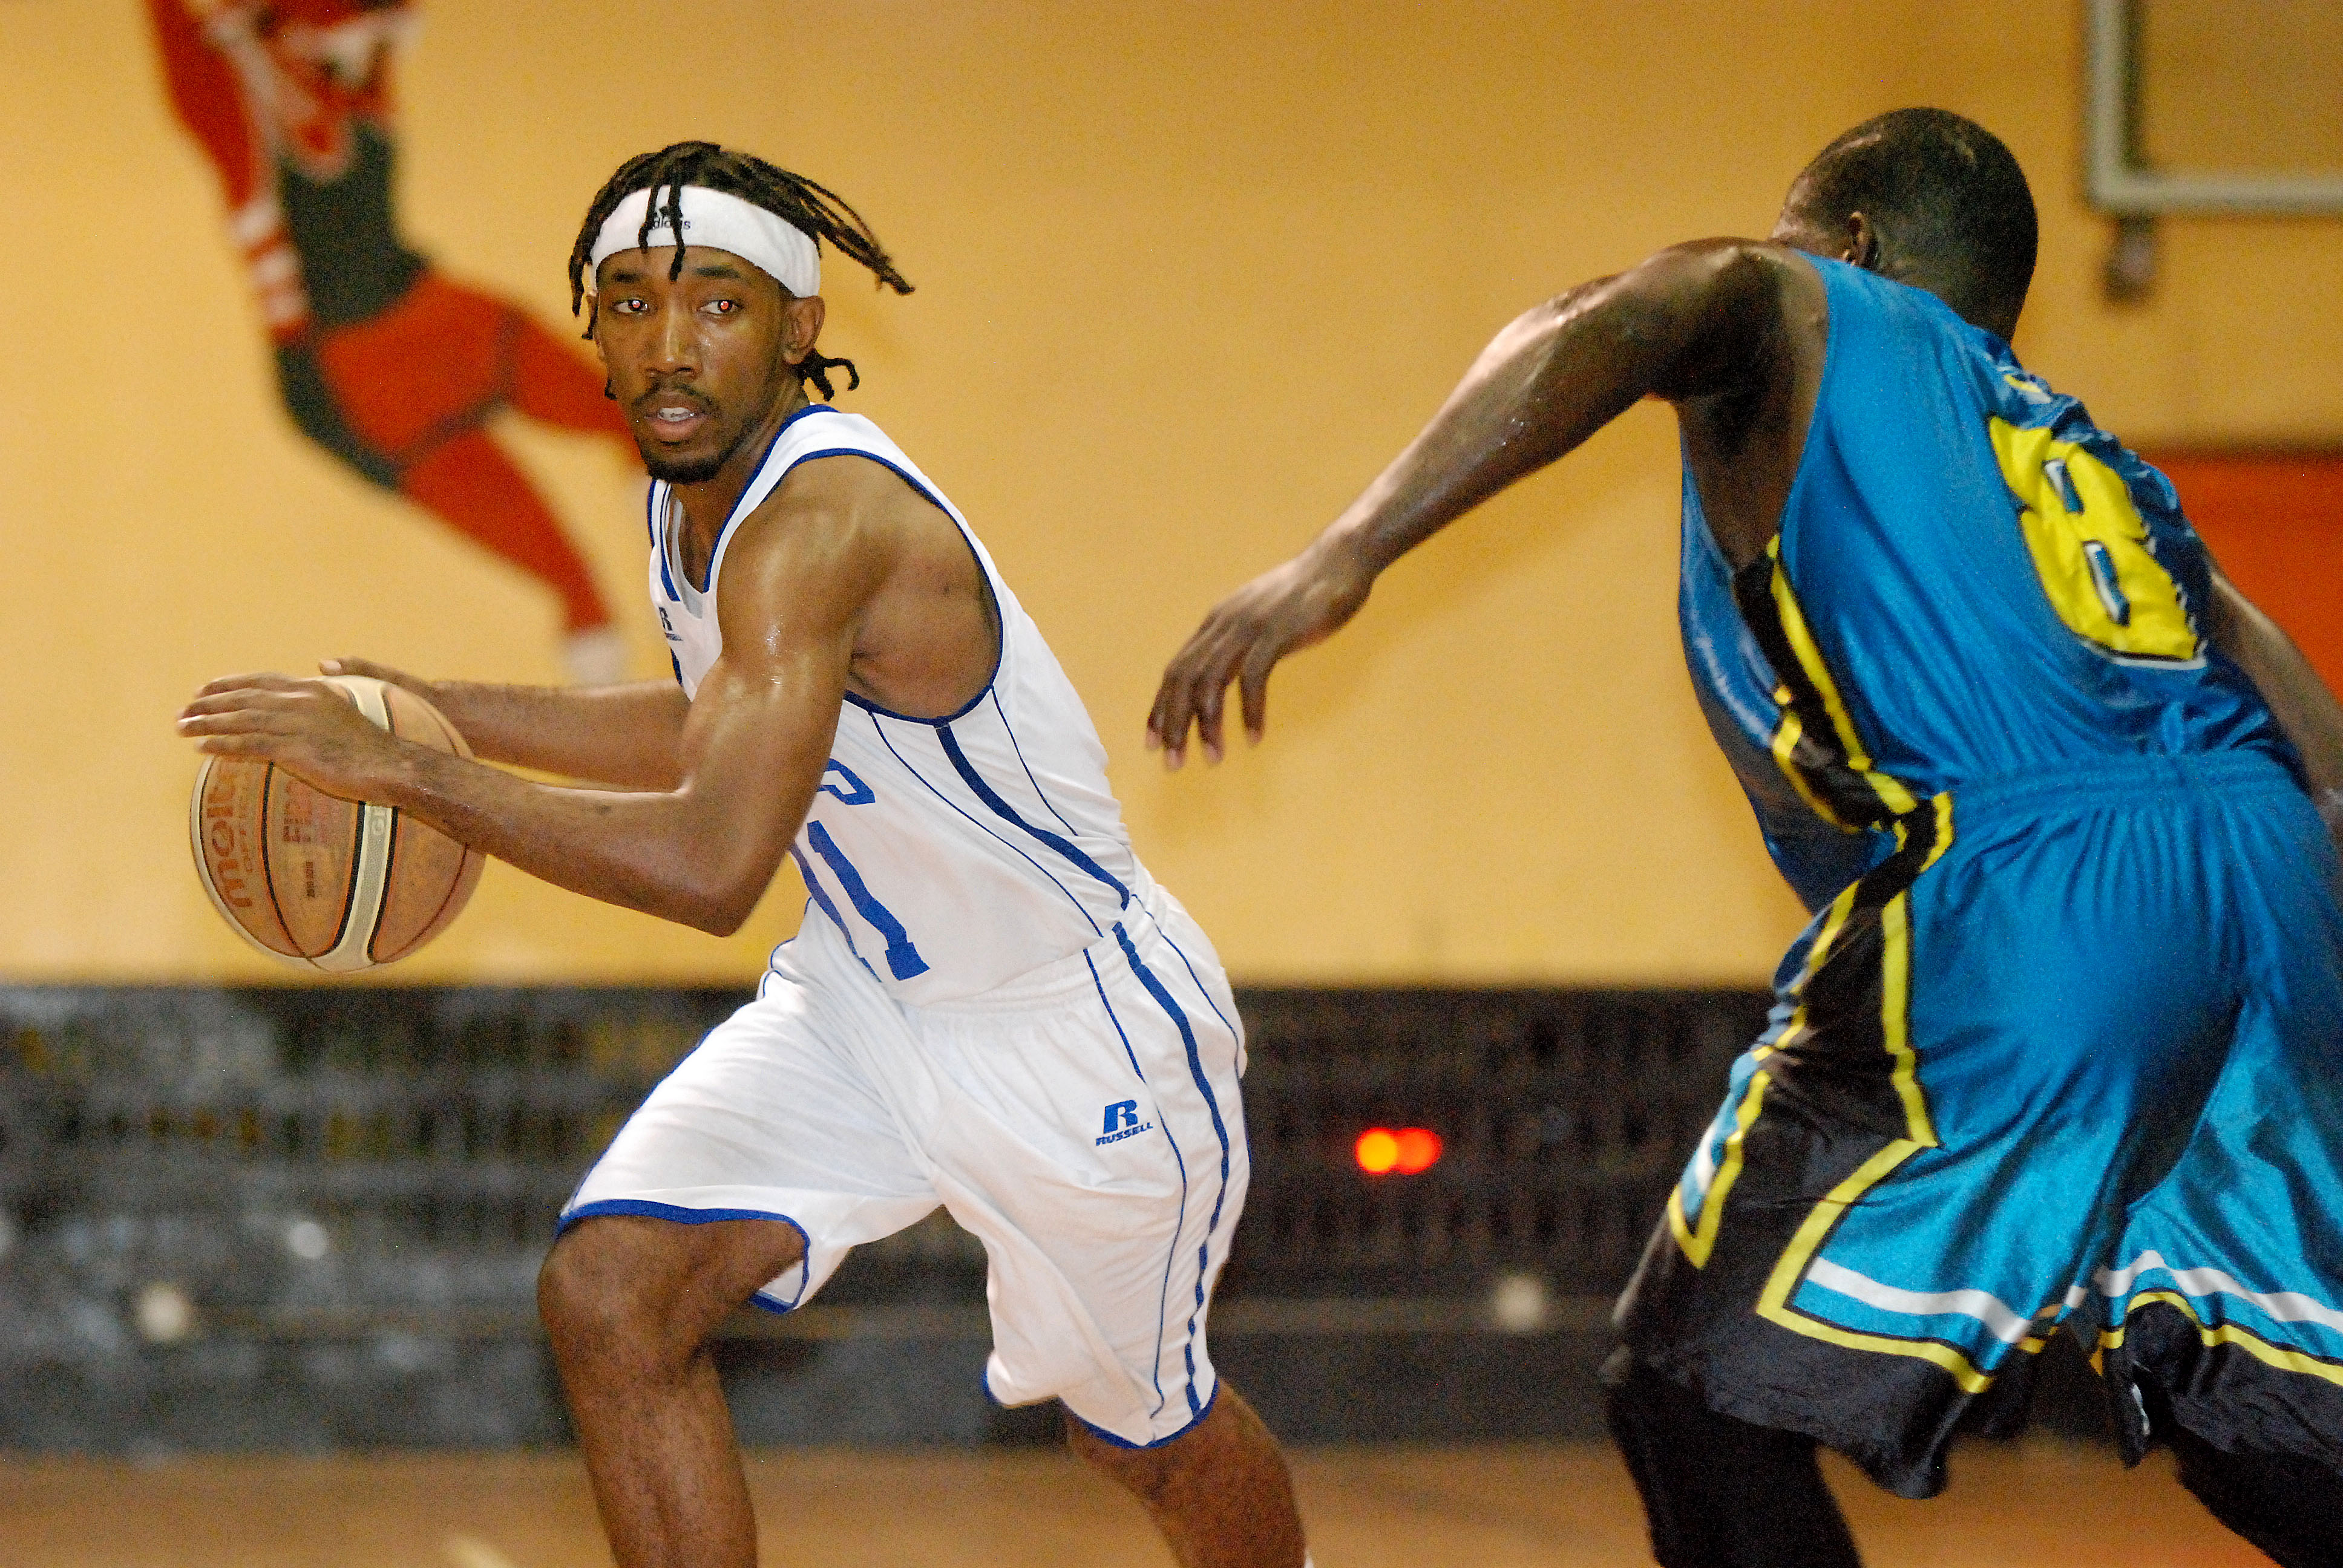 Mingoes demolish Pros in NPBA action to remain undefeated